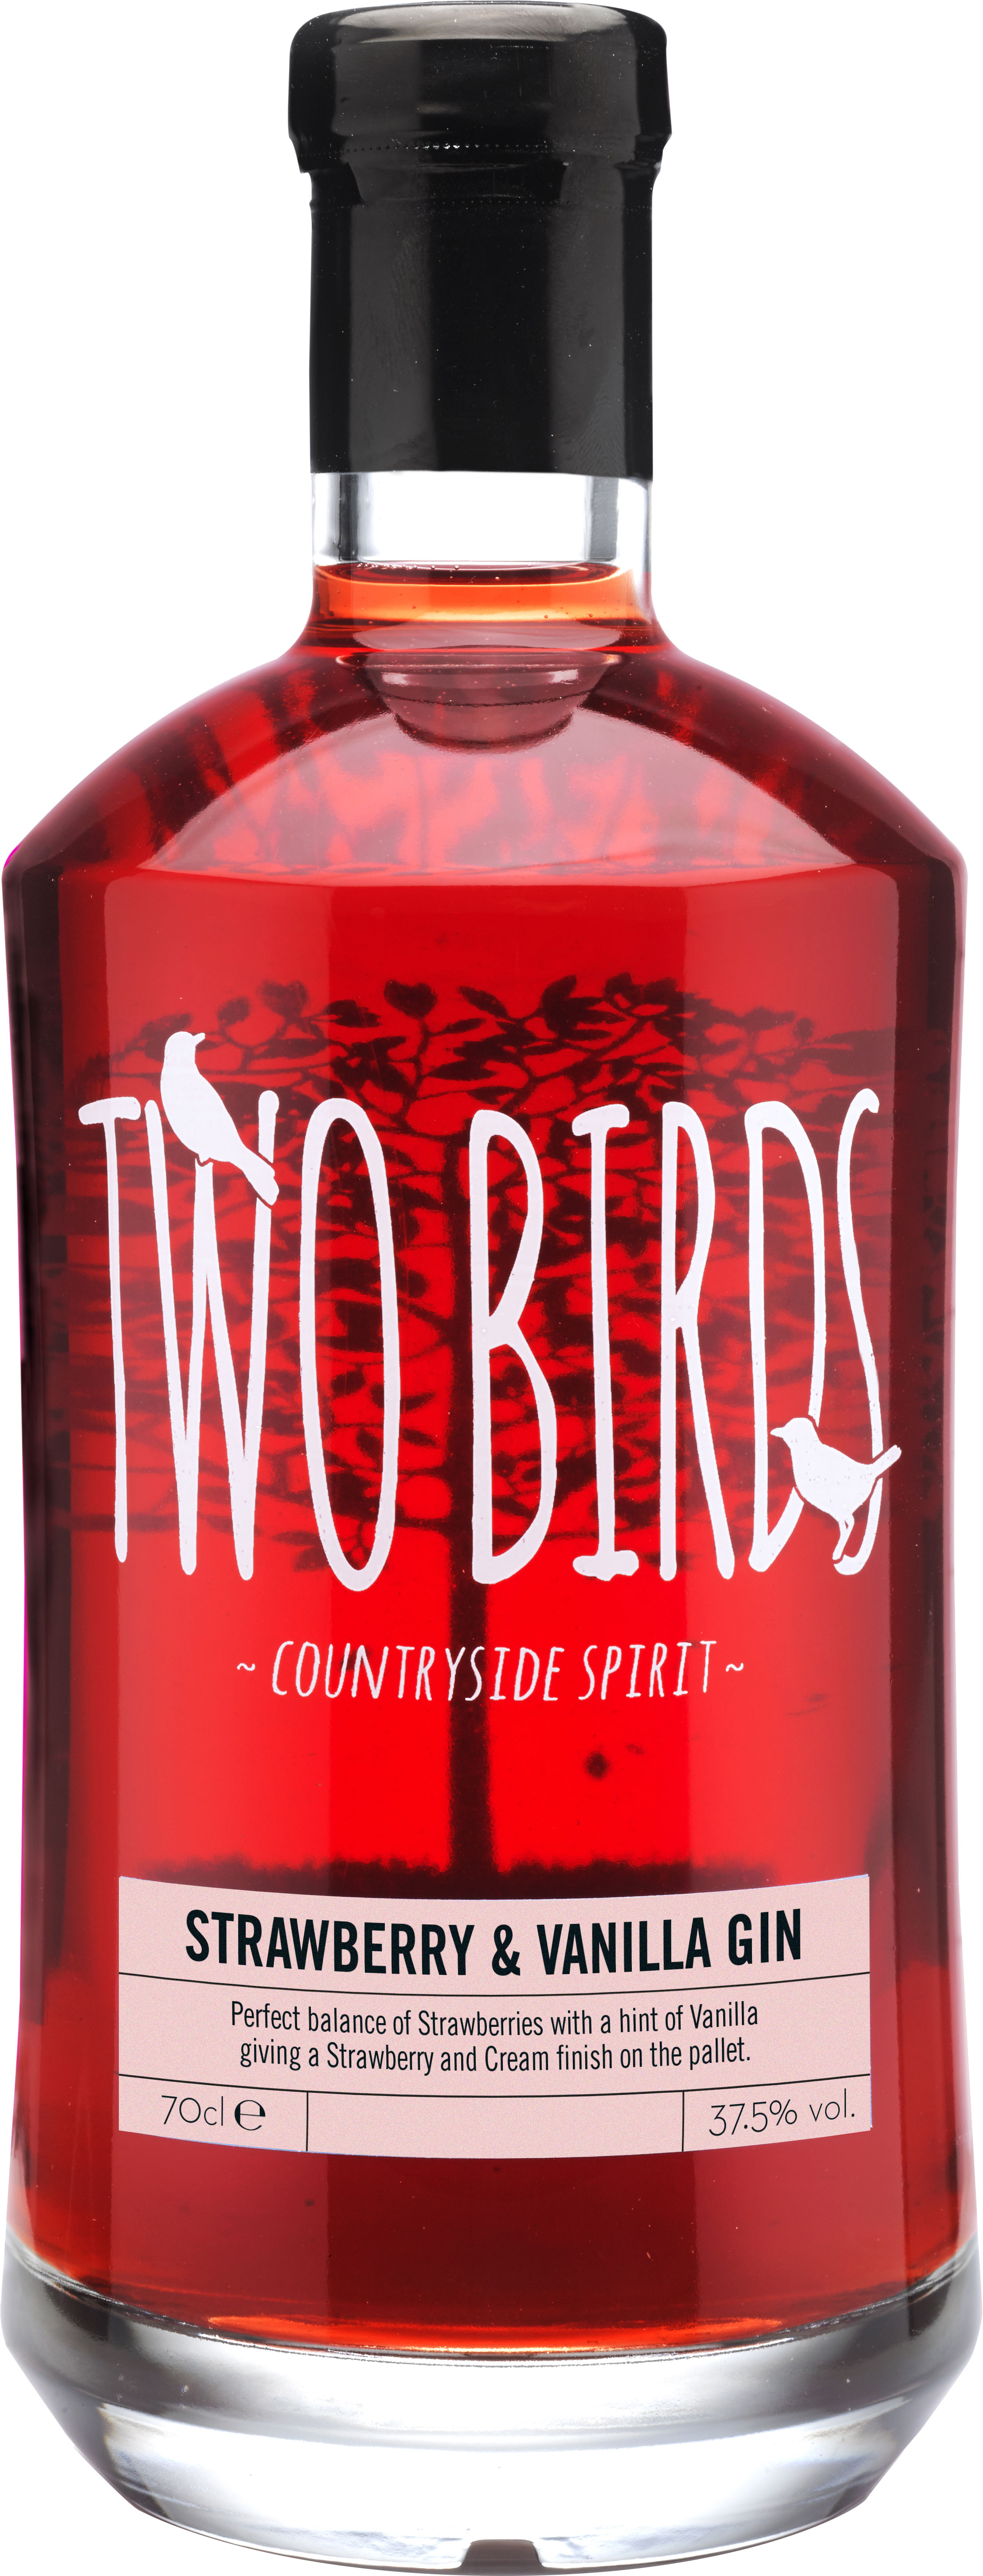 Two Birds - Strawberry and Vanilla Gin 70cl Bottle